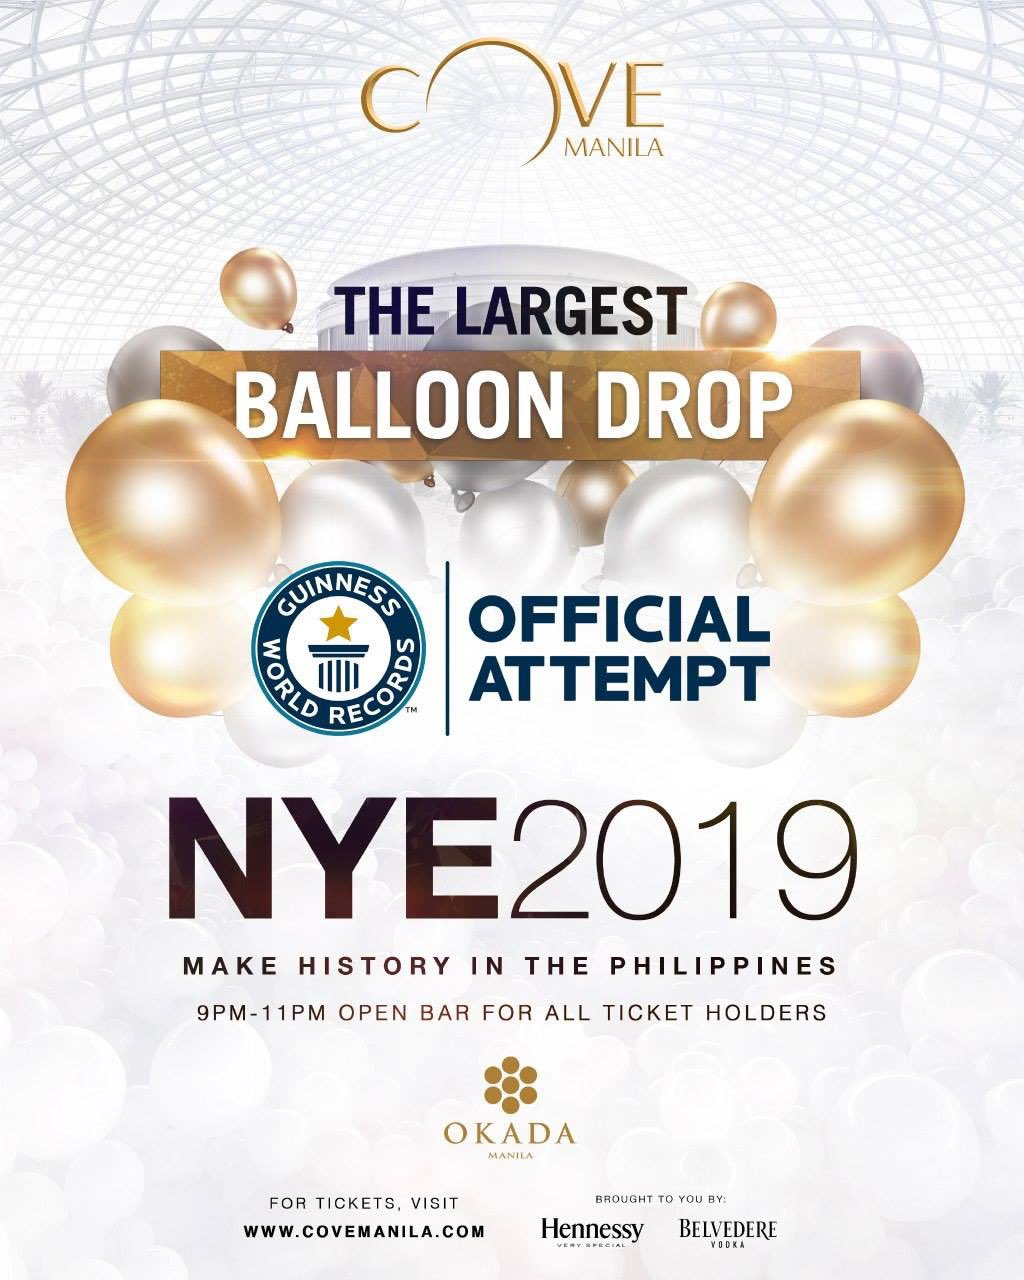 """130,000 balloons"" Cove Manila's largest balloon drop"